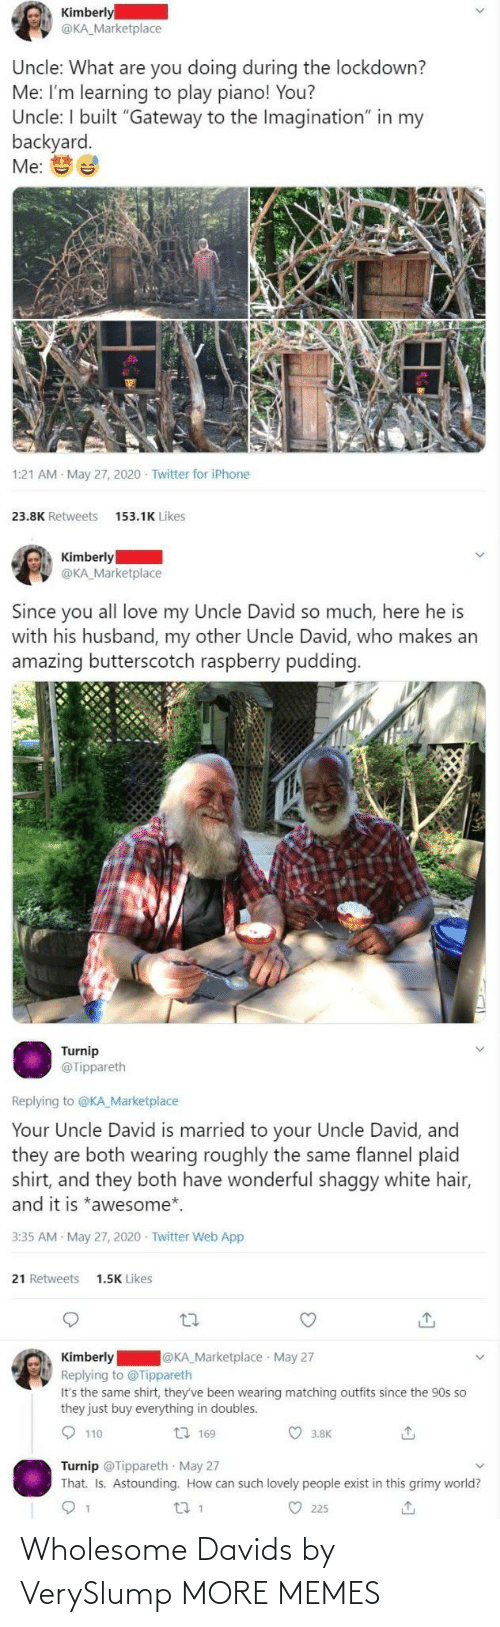 Wholesome: Wholesome Davids by VerySlump MORE MEMES